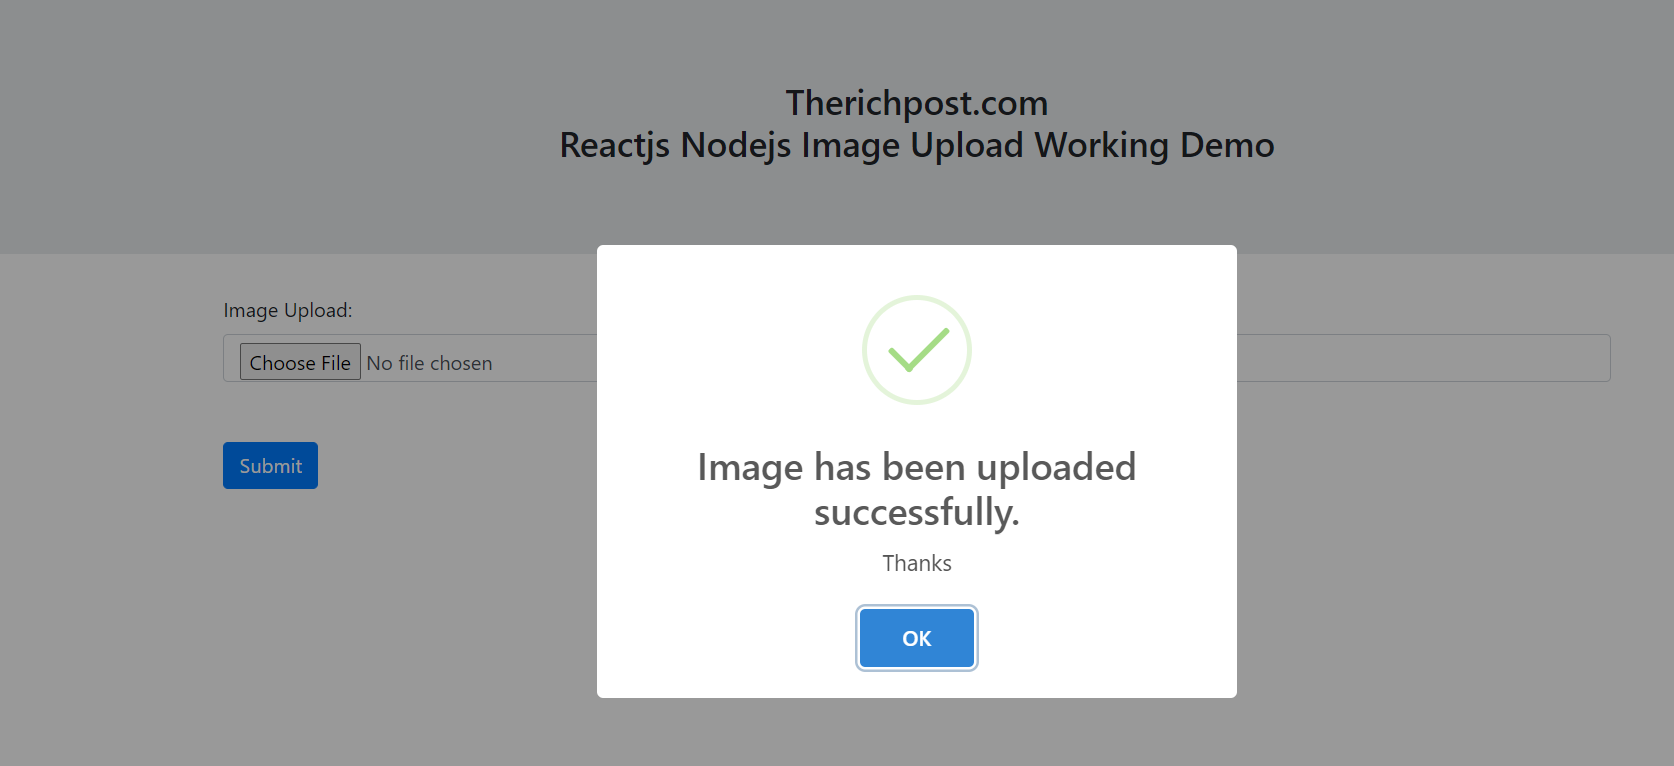 Reactjs Nodejs Image Upload Working Demo